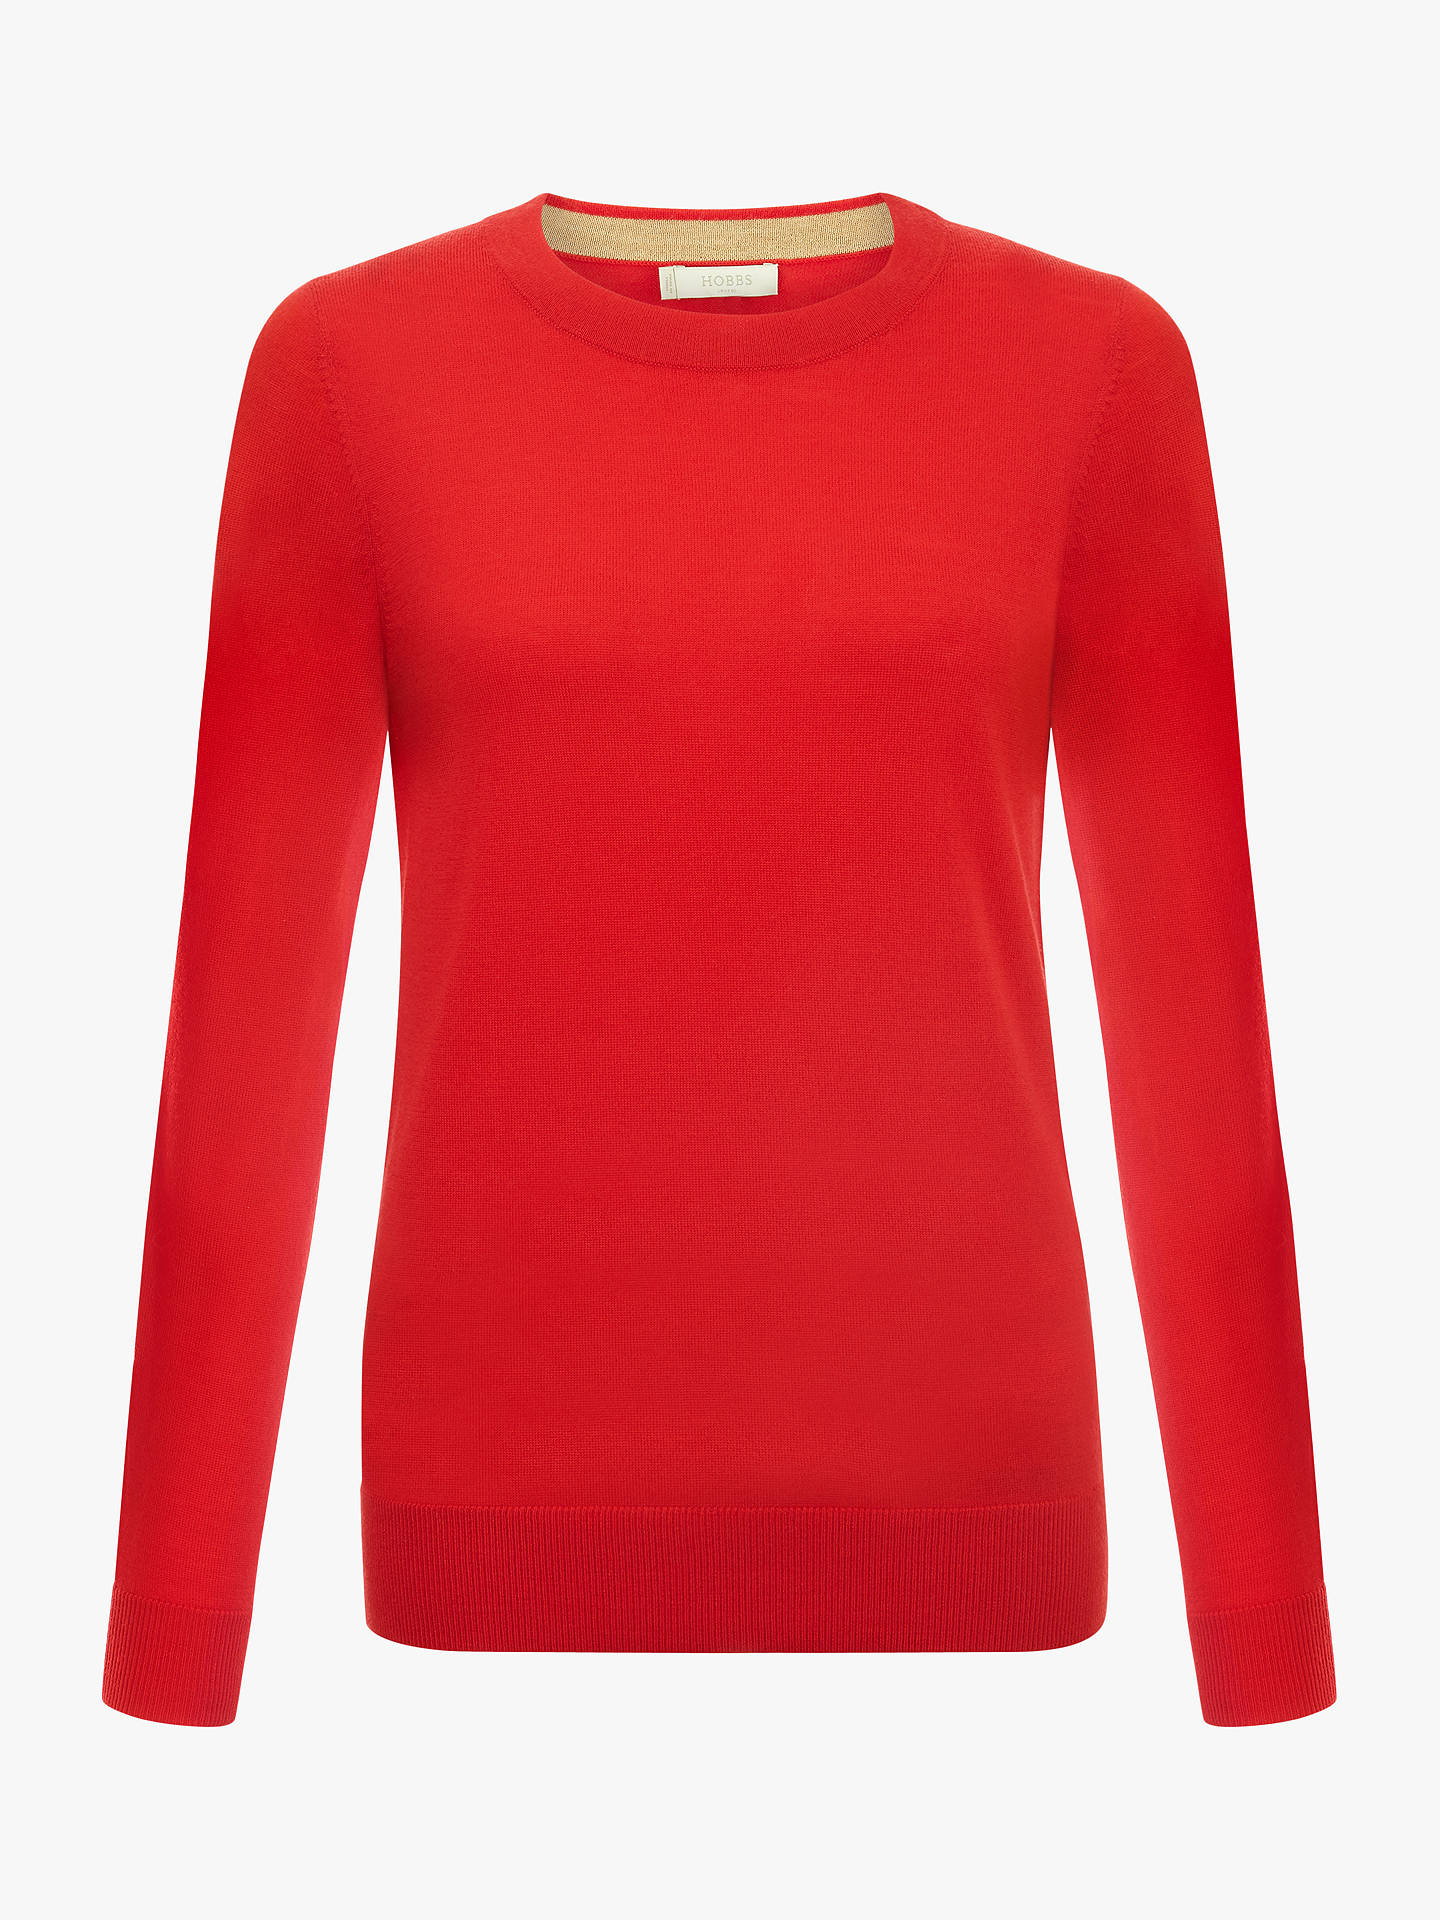 BuyHobbs Penny Knitted Sweater, Red, XL Online at johnlewis.com